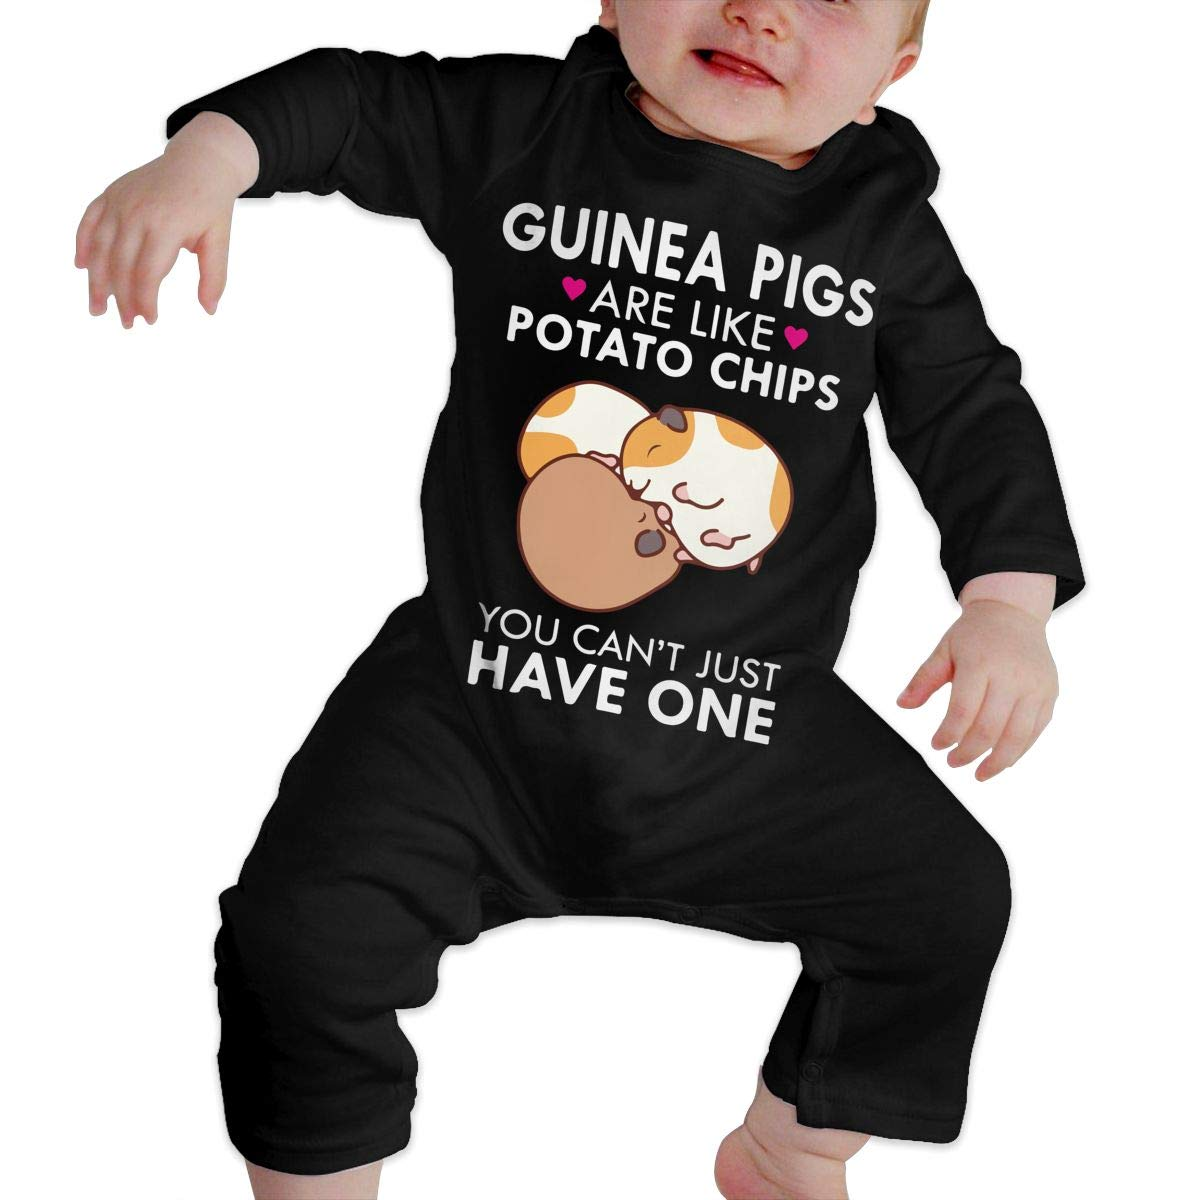 4066af12efb Amazon.com: Baby Boys Round Collar Guinea Pigs are Like Potato Chips Long  Sleeve Playsuit 100% Cotton, Suit 6-24 Months: Clothing